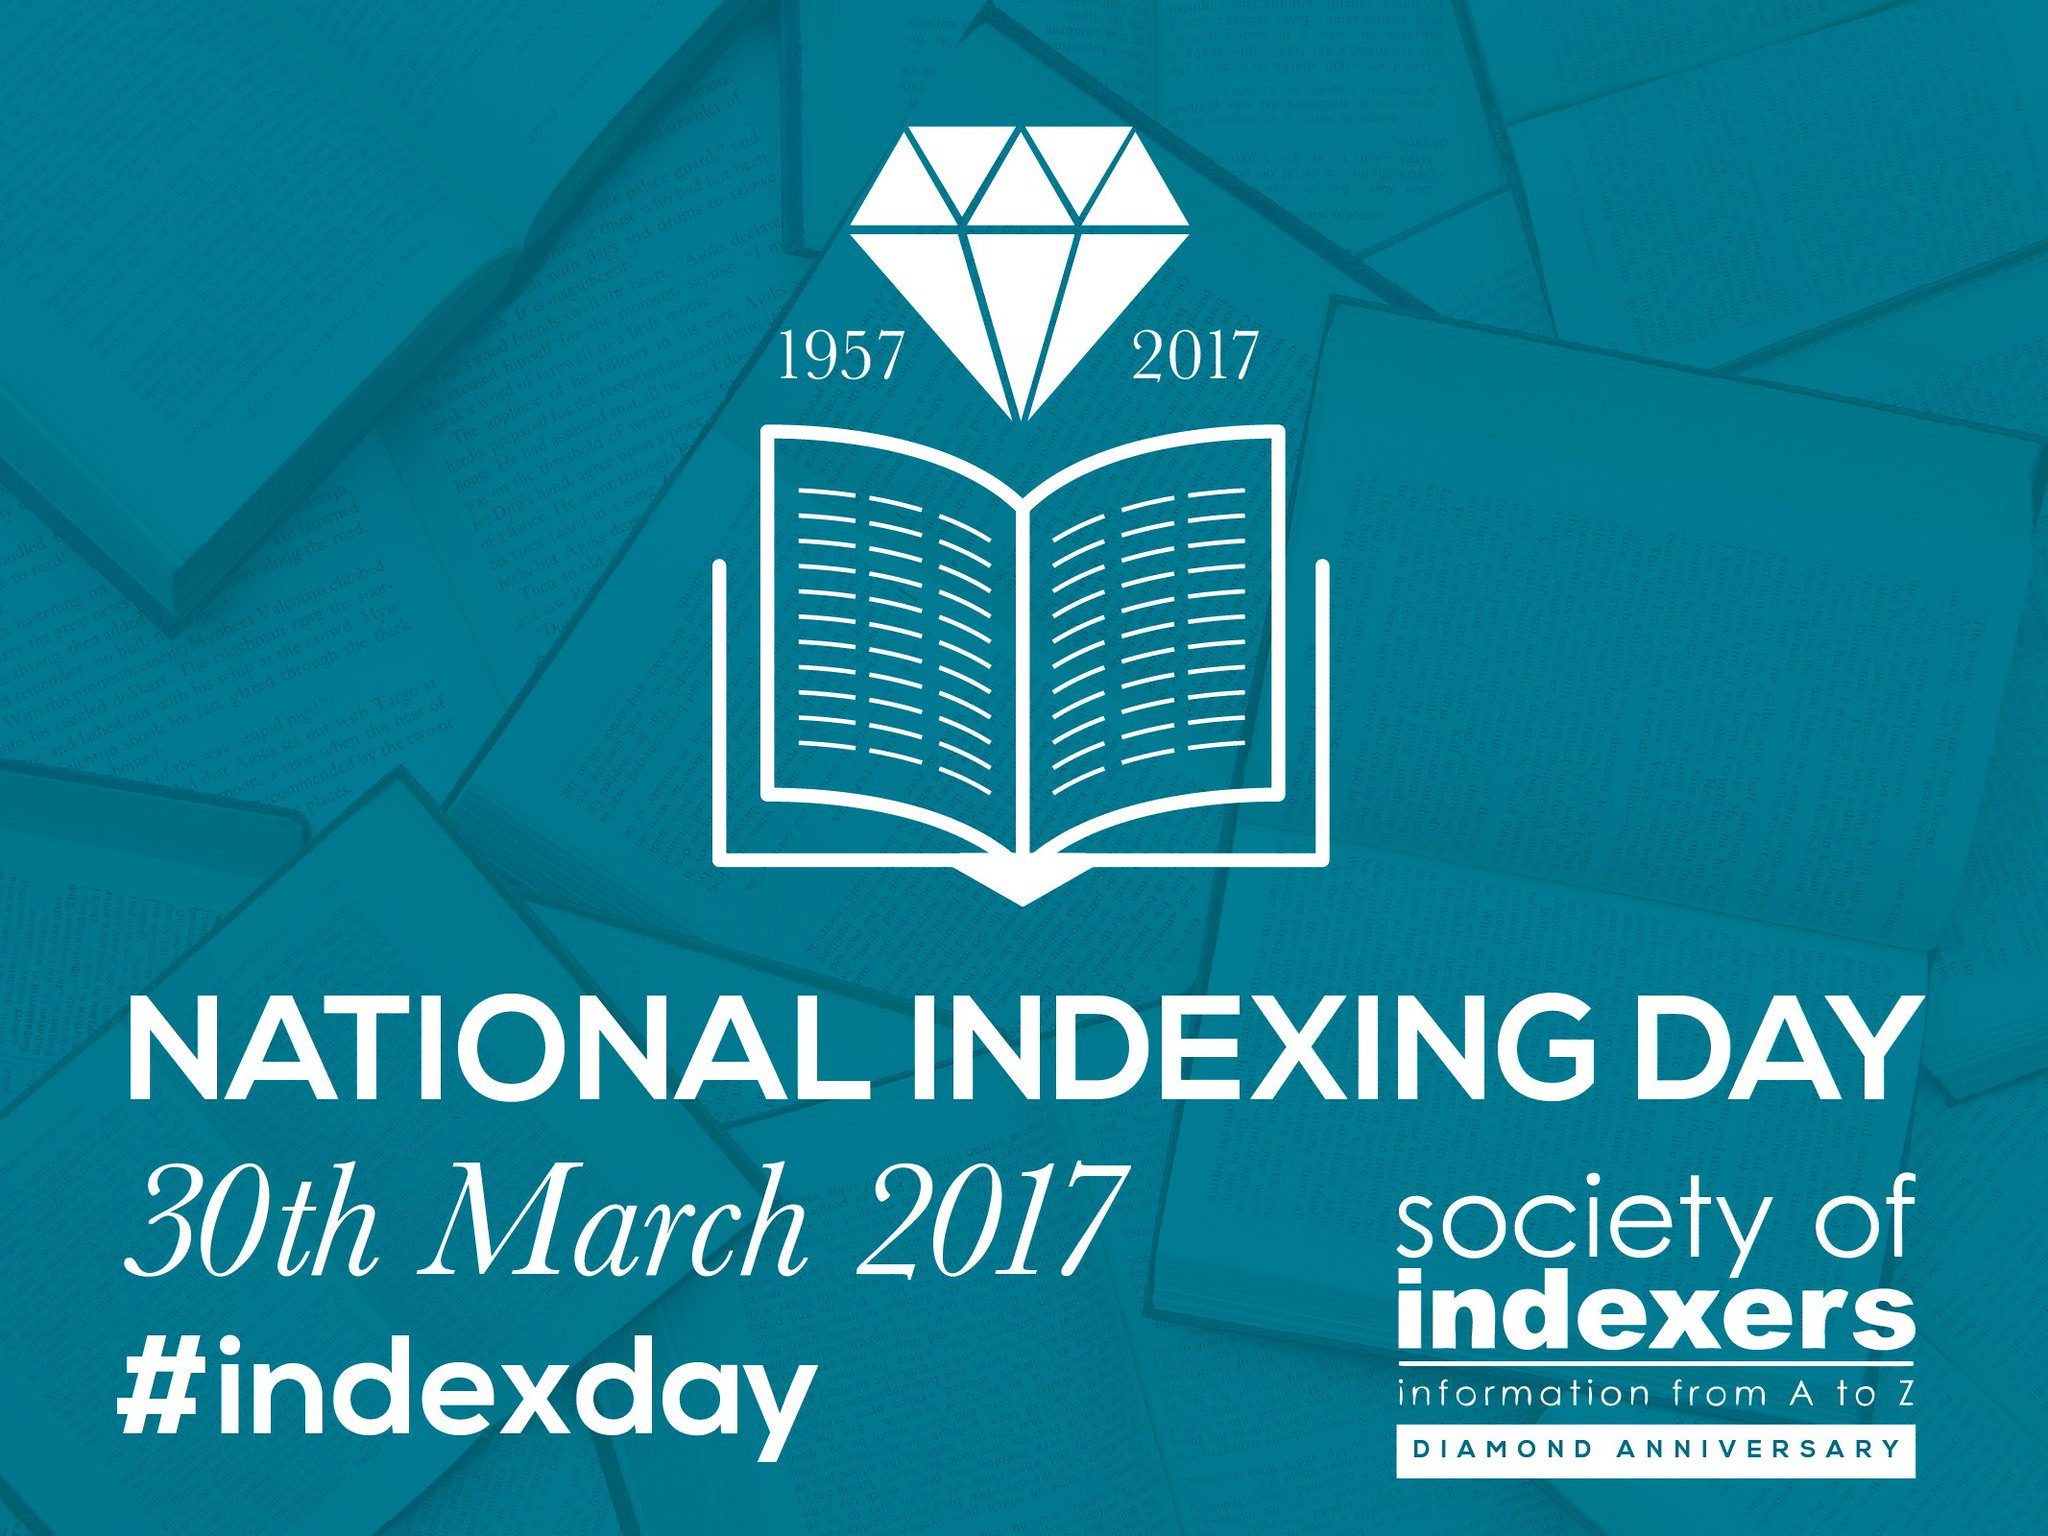 We're getting ready for #indexday. Find out more via the pdf file on the front page of our website https://t.co/1yjEMnHUJG https://t.co/GXL9fpN02k